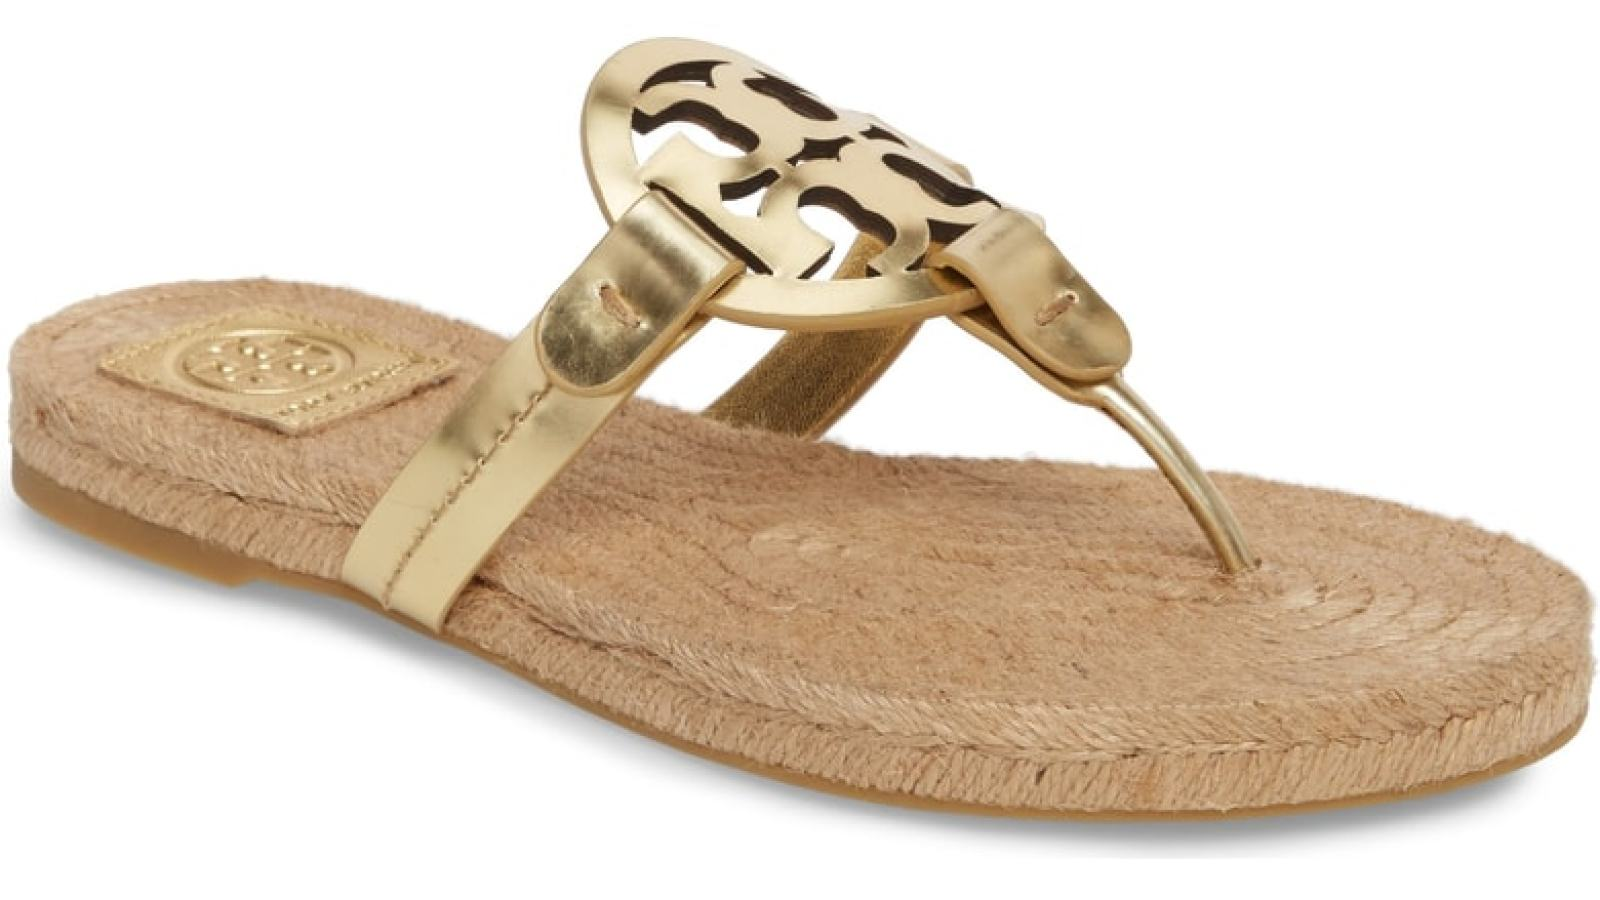 3d18589a49e7a So Many Tory Burch Sandals Are On Sale at Nordstrom and We re Already  Stocking Up for Next Summer. By Marquaysa Battle. tory burch sandal sale